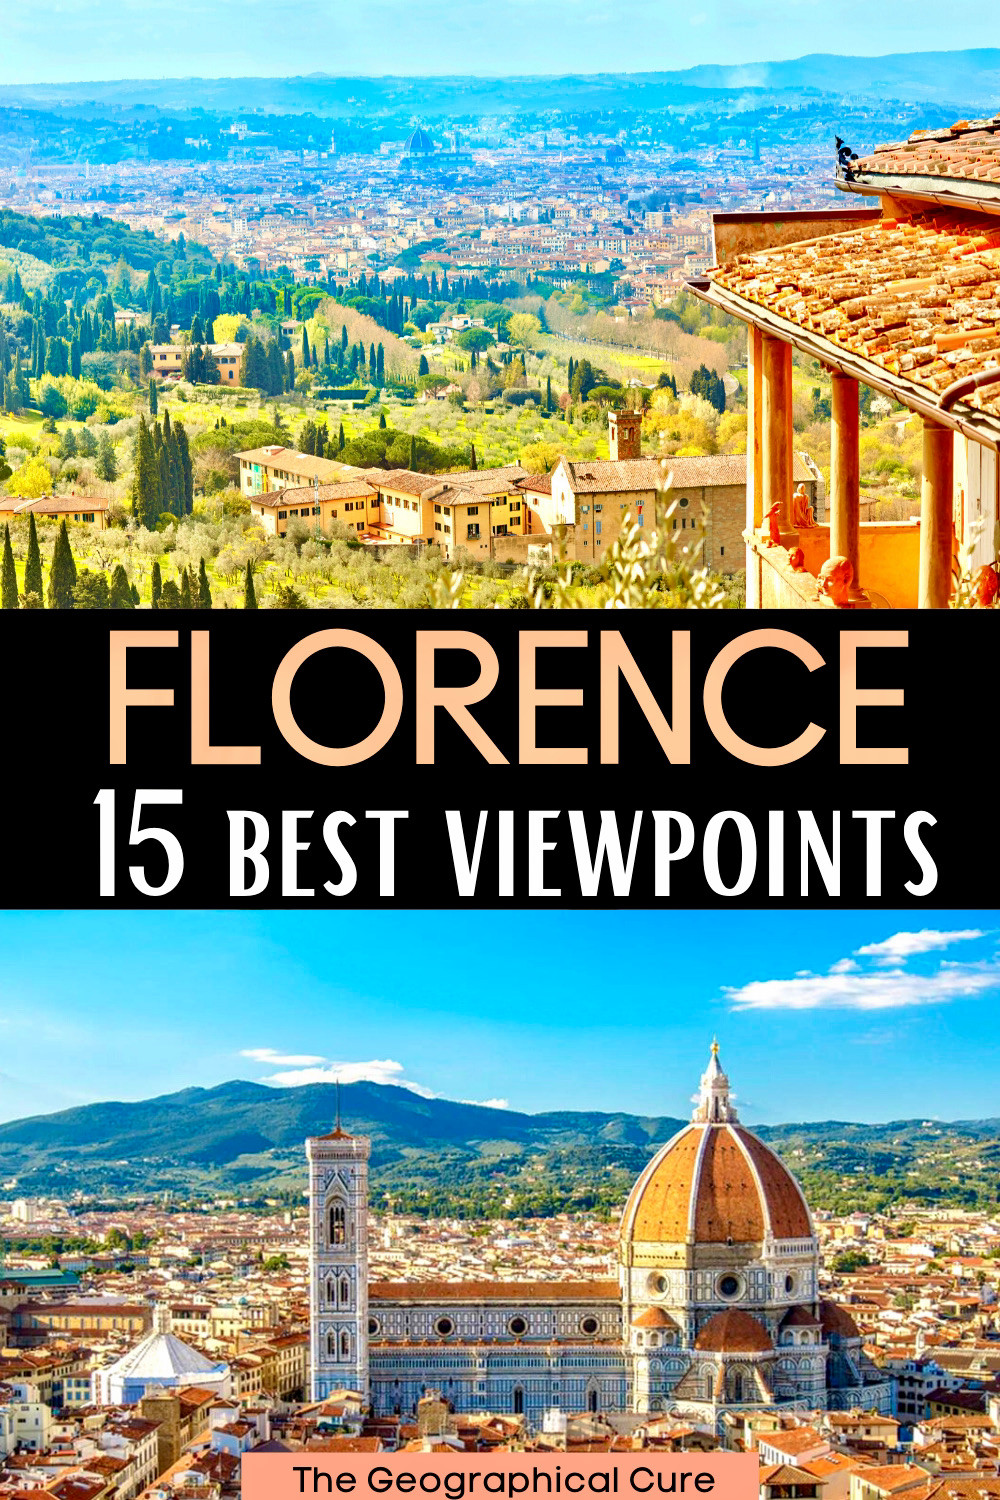 guide to the best viewpoints in Florence Italy